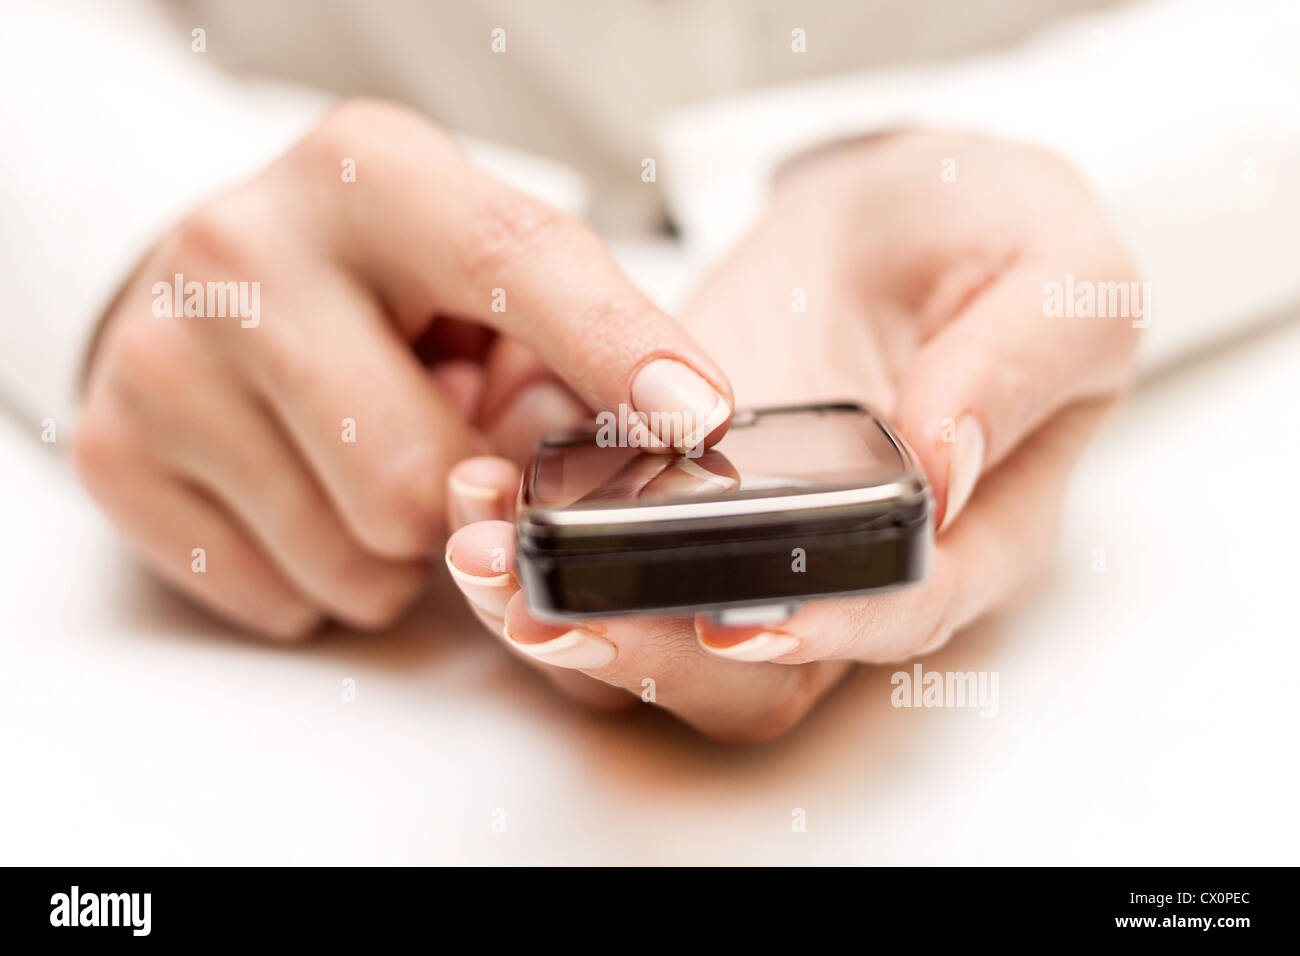 Closeup of female hands using a smart phone. - Stock Image